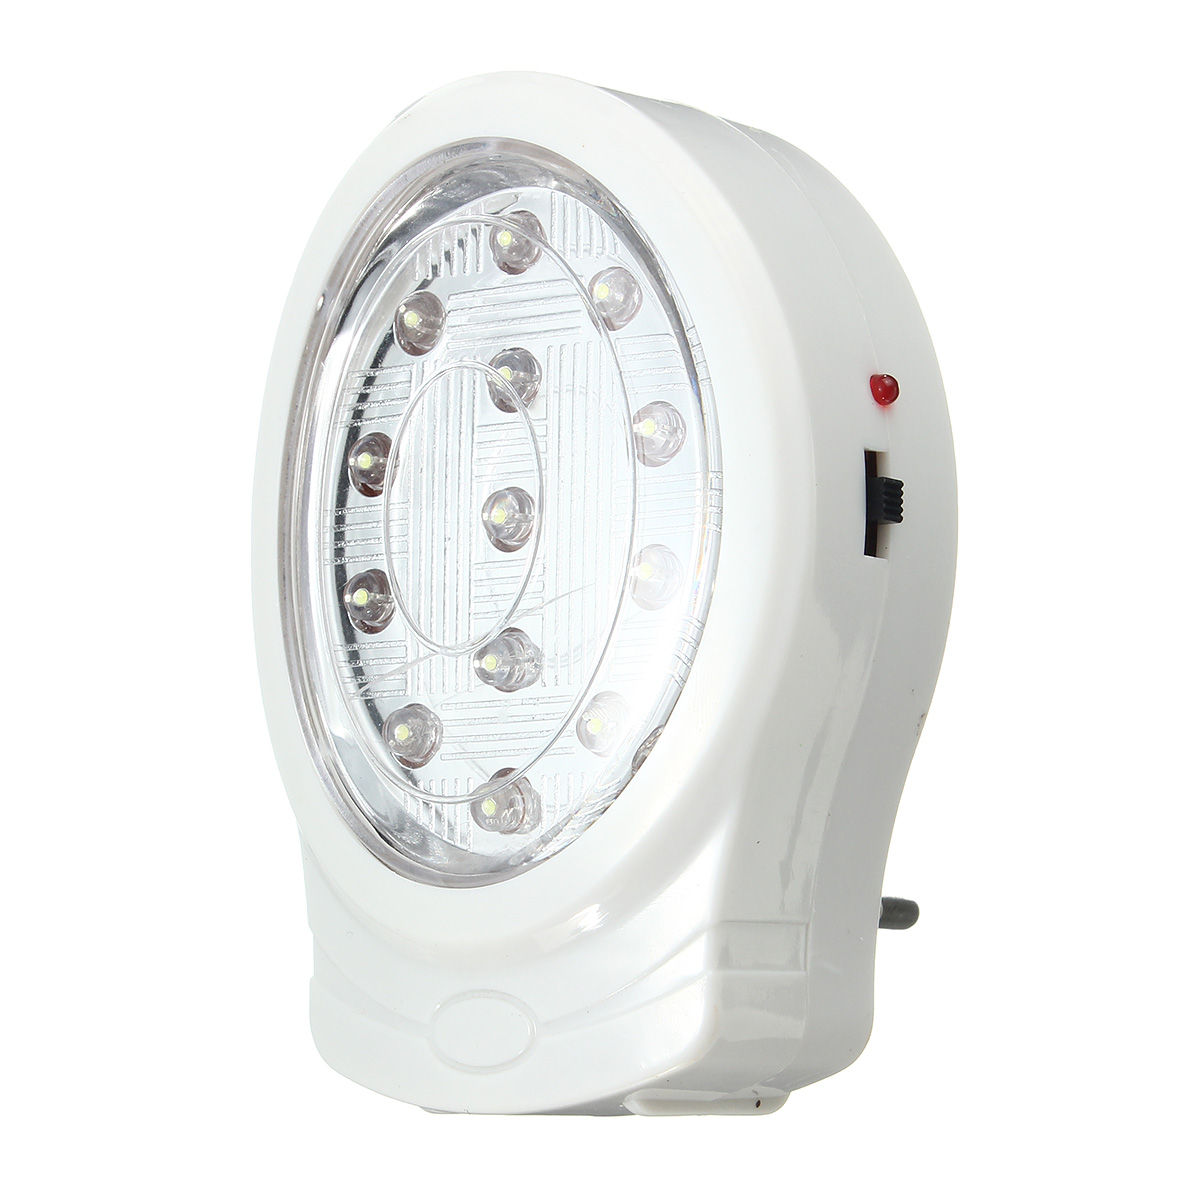 Rechargeable LED Home Wall <font><b>Emergency</b></font> <font><b>Light</b></font> Power Failure Lamp <font><b>Bulb</b></font> EU Plug AC110-240V For Bedroom Night <font><b>Light</b></font> image